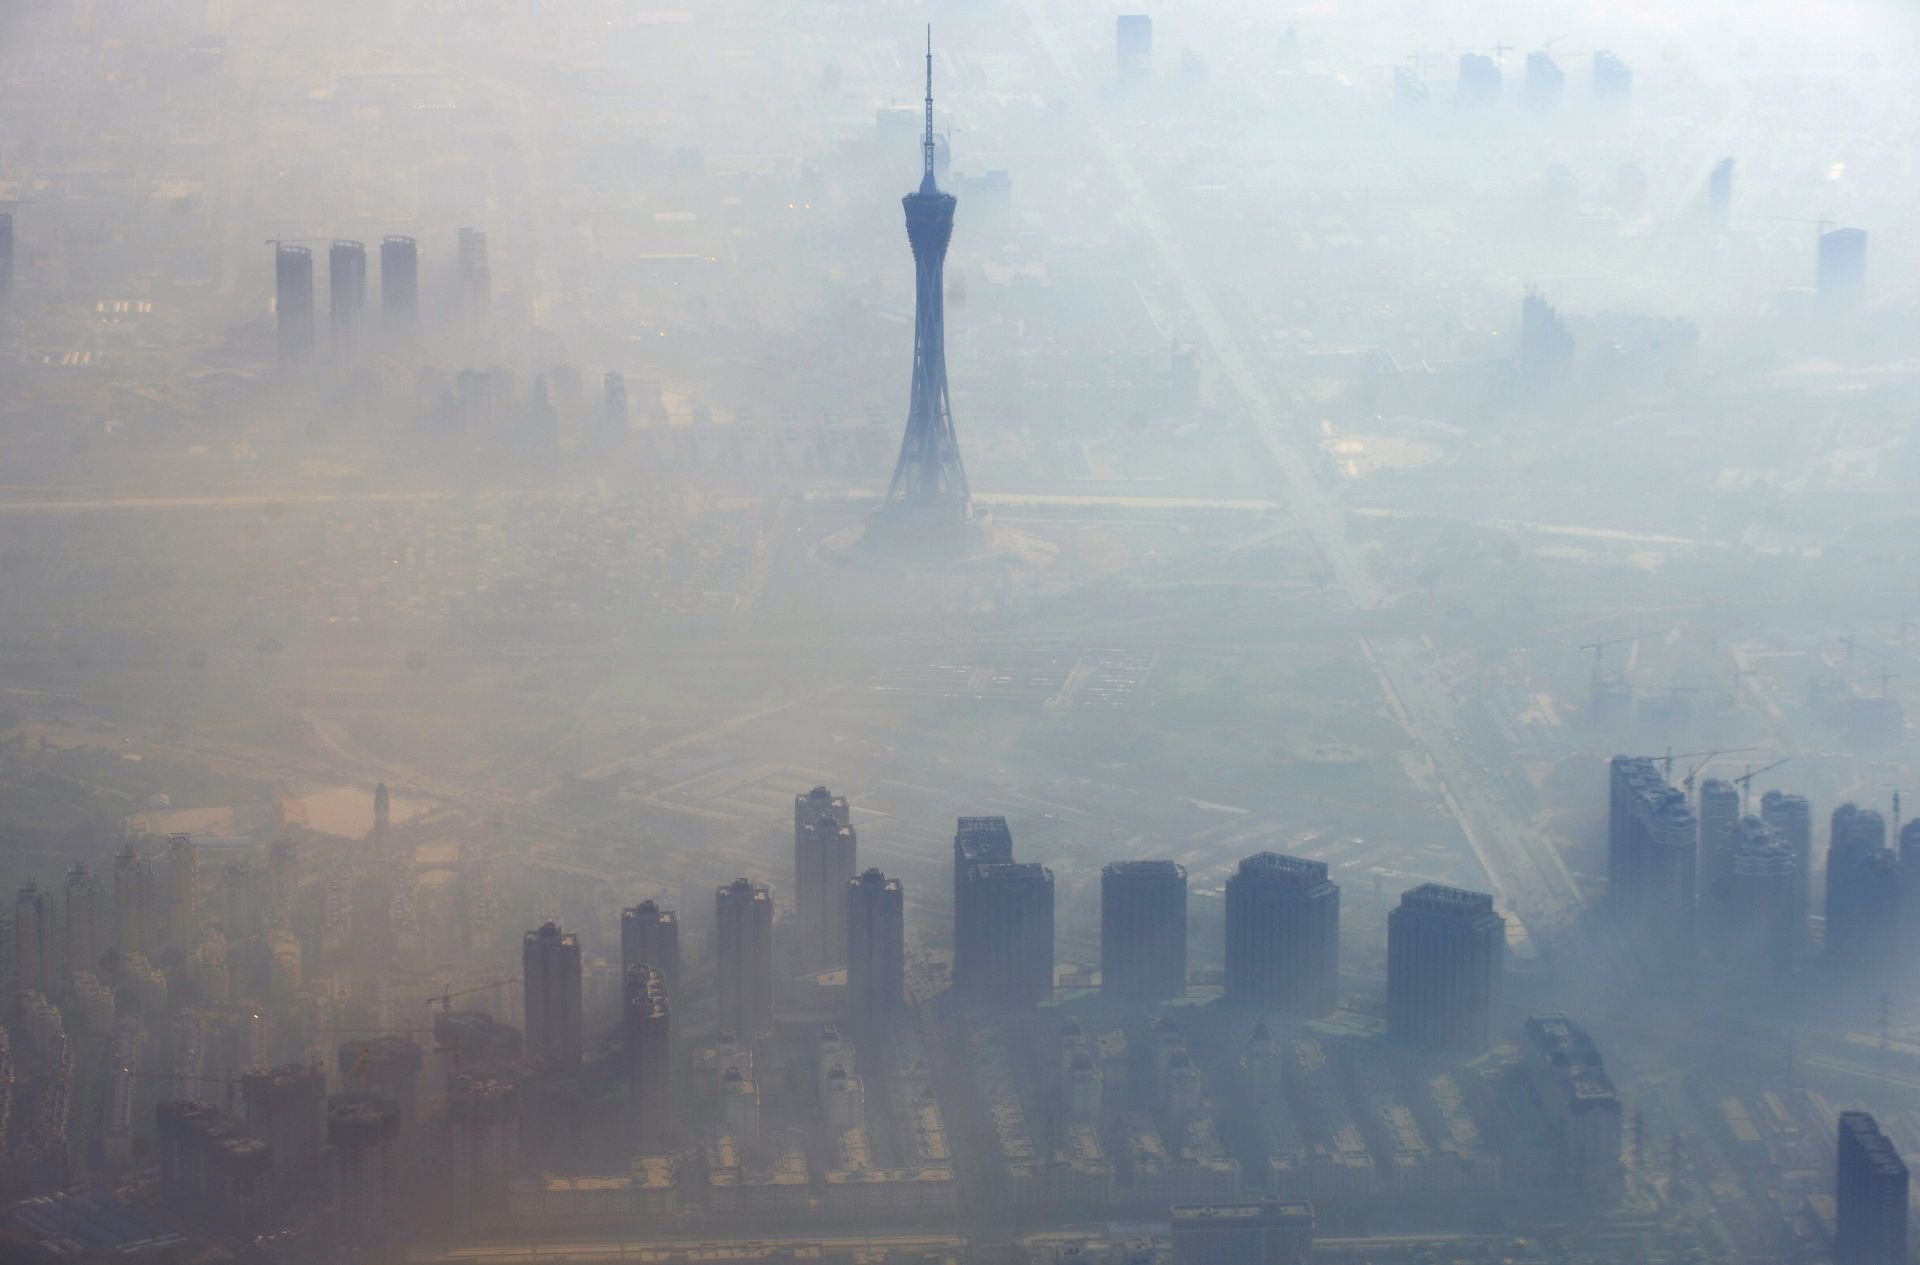 atmospheric pollution in beijing and the